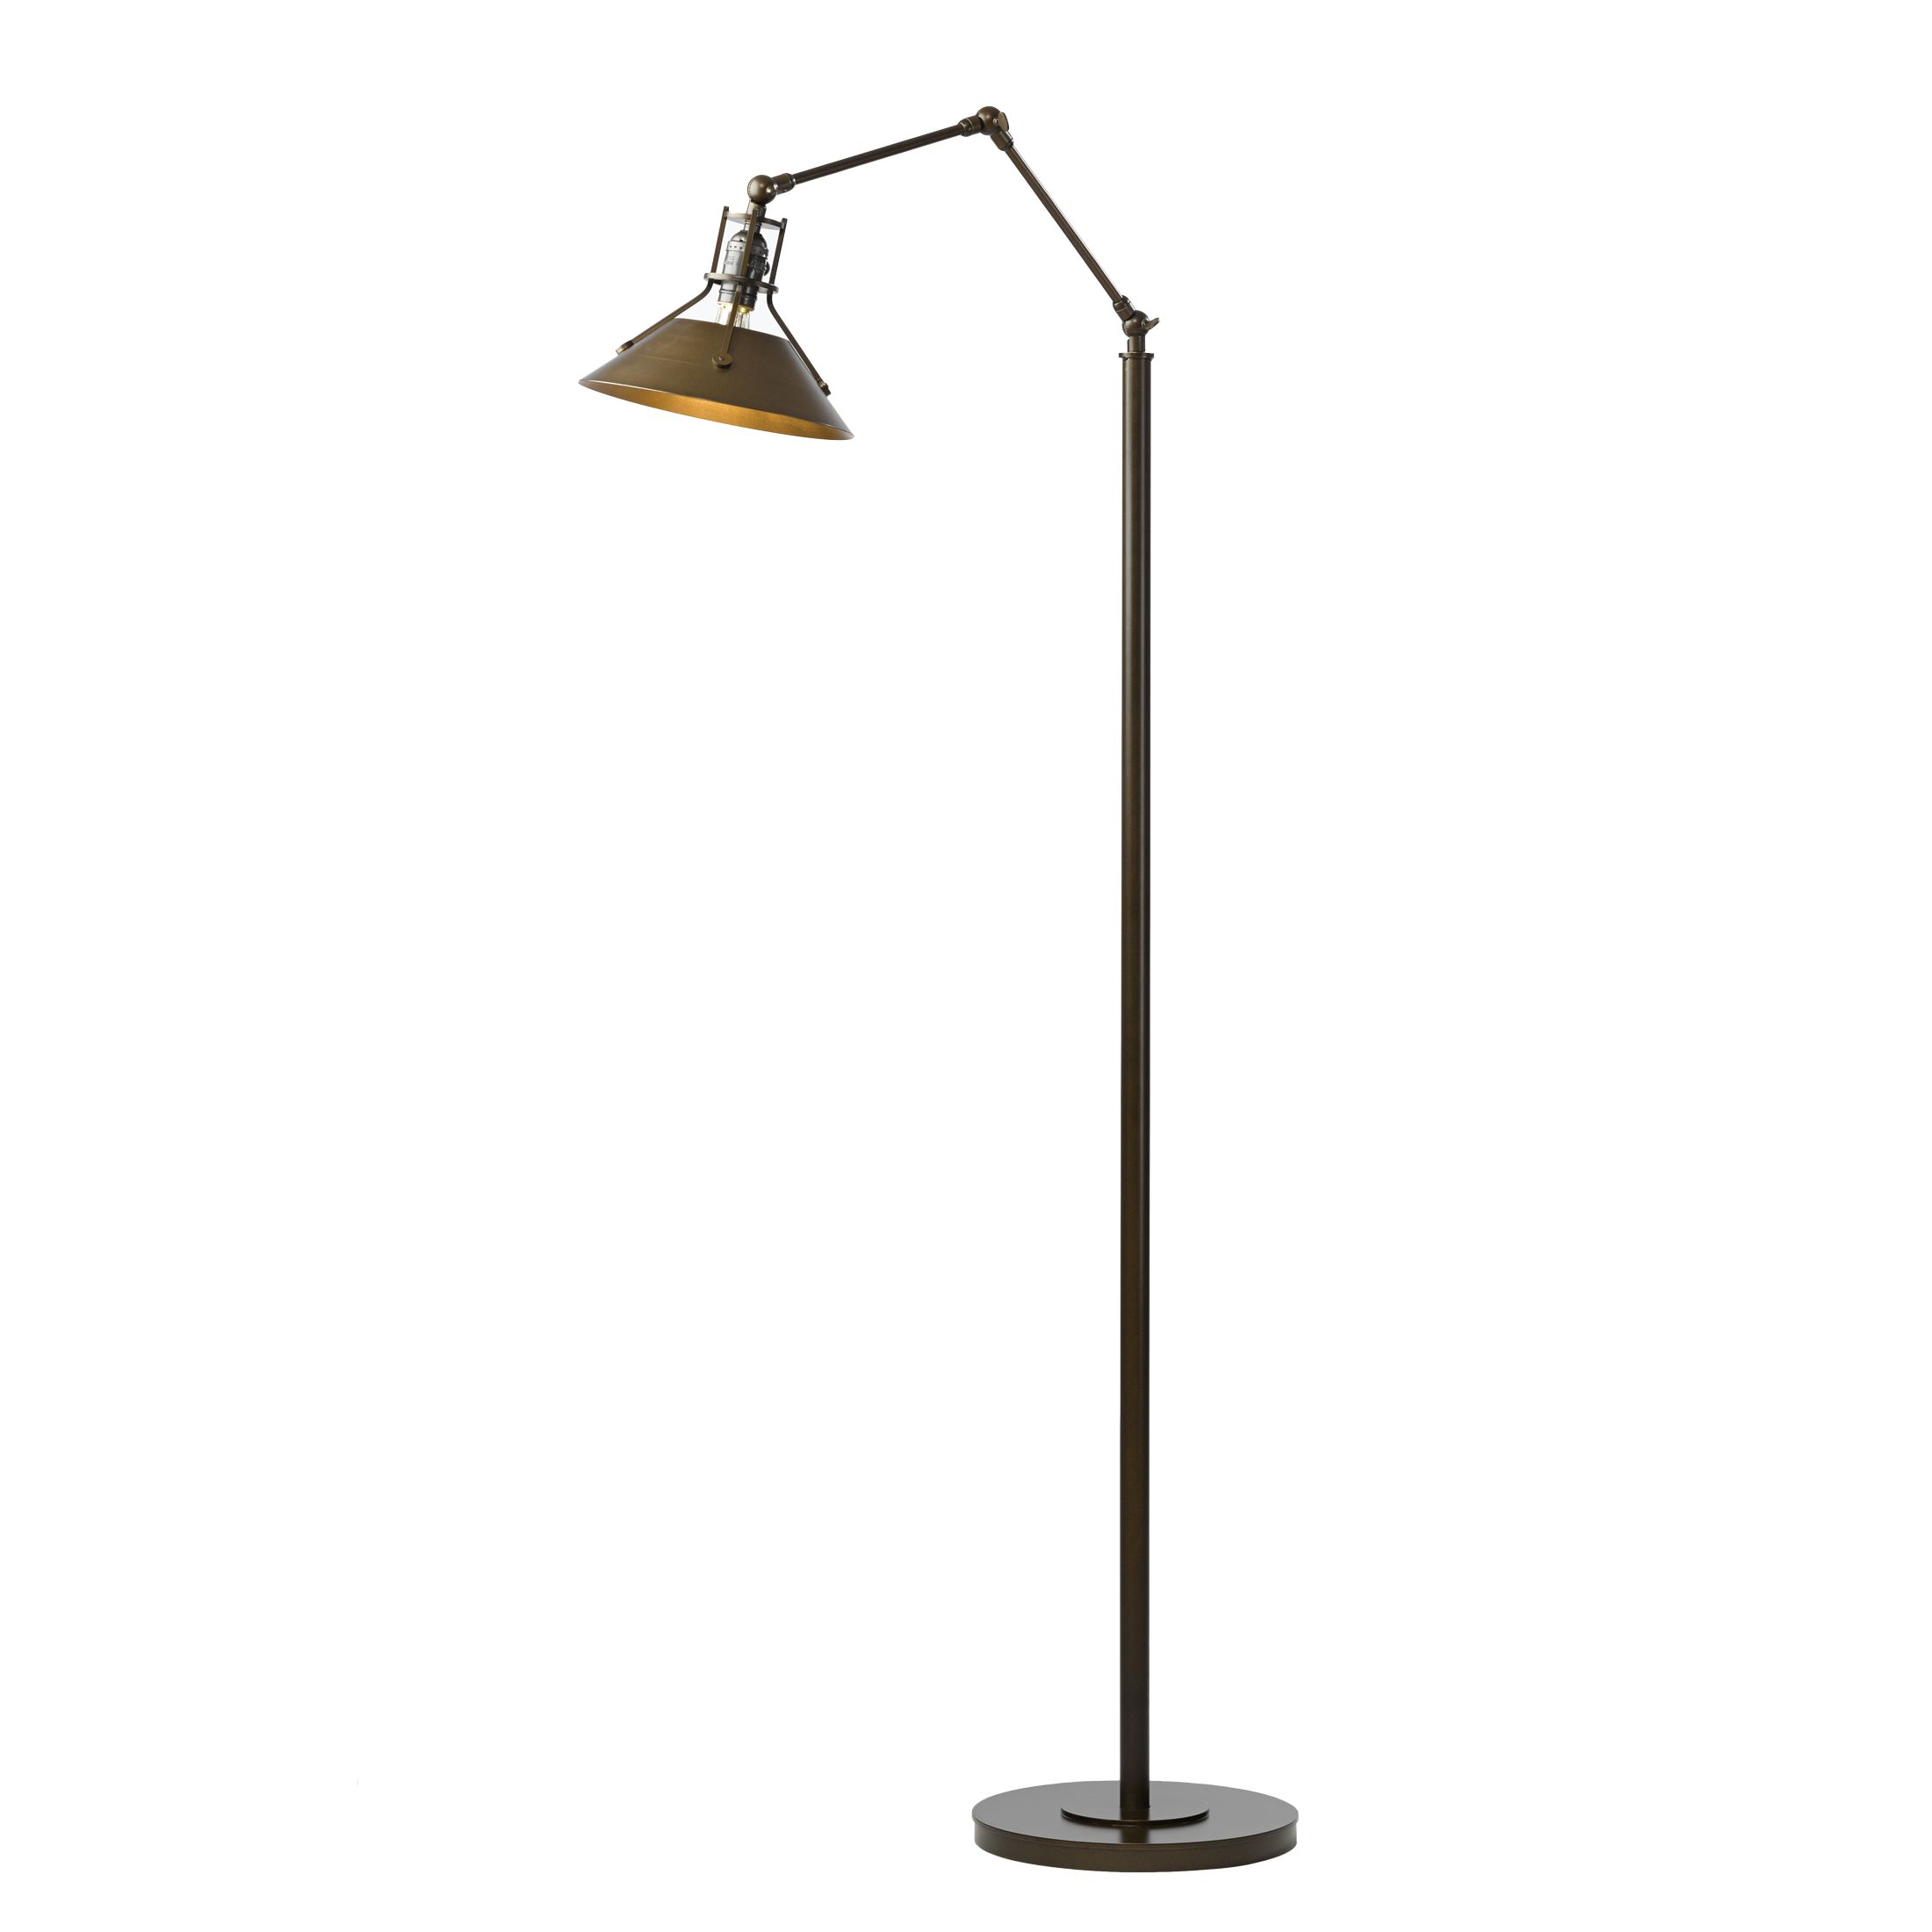 Thumbnail for Henry Floor Lamp